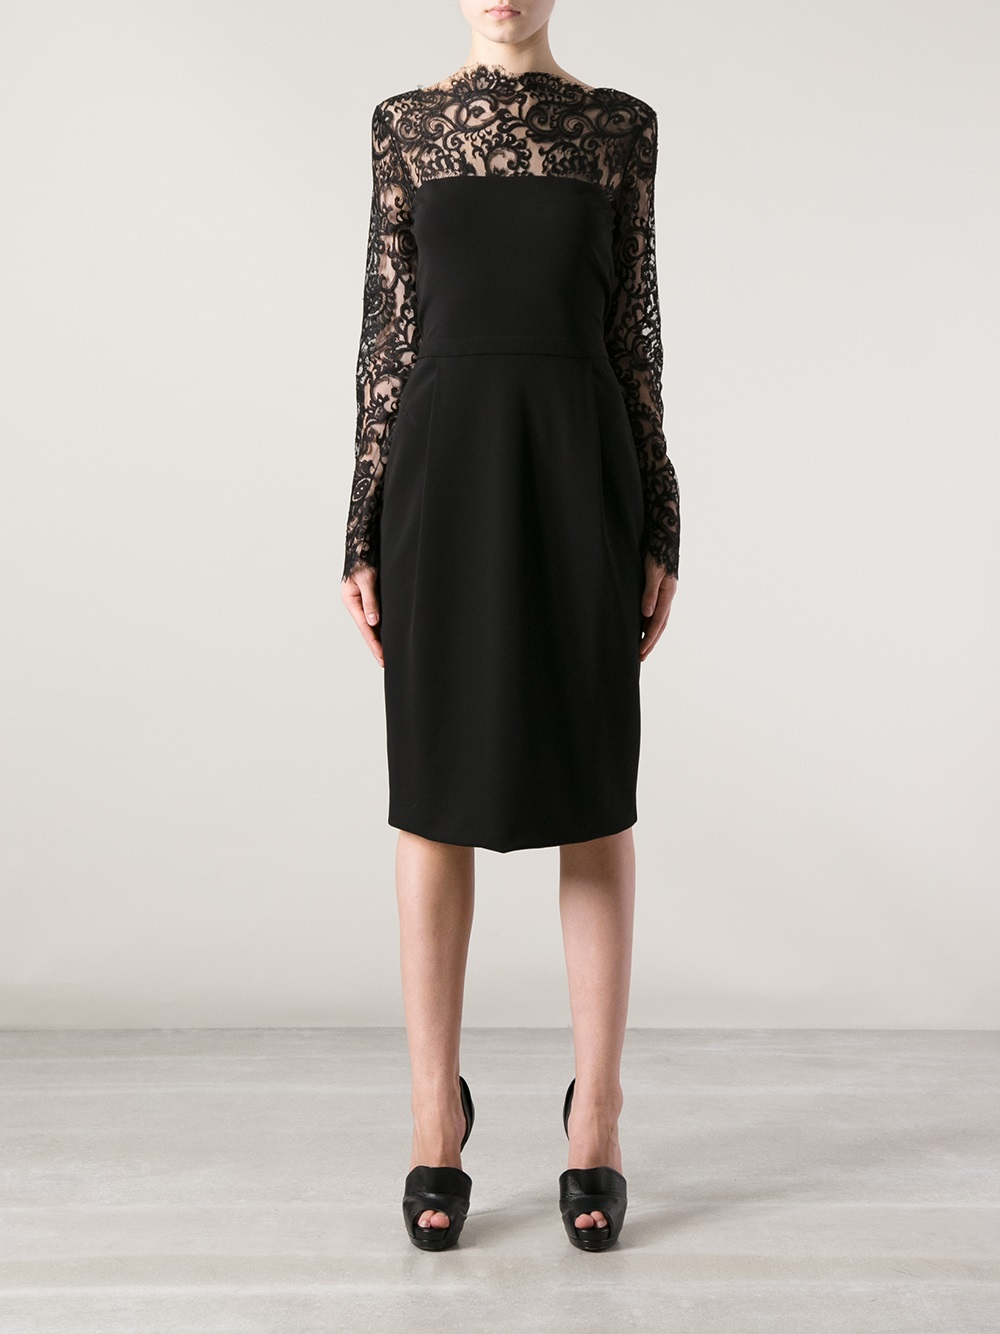 Lyst Gucci Lace Detail Jersey Dress In Black